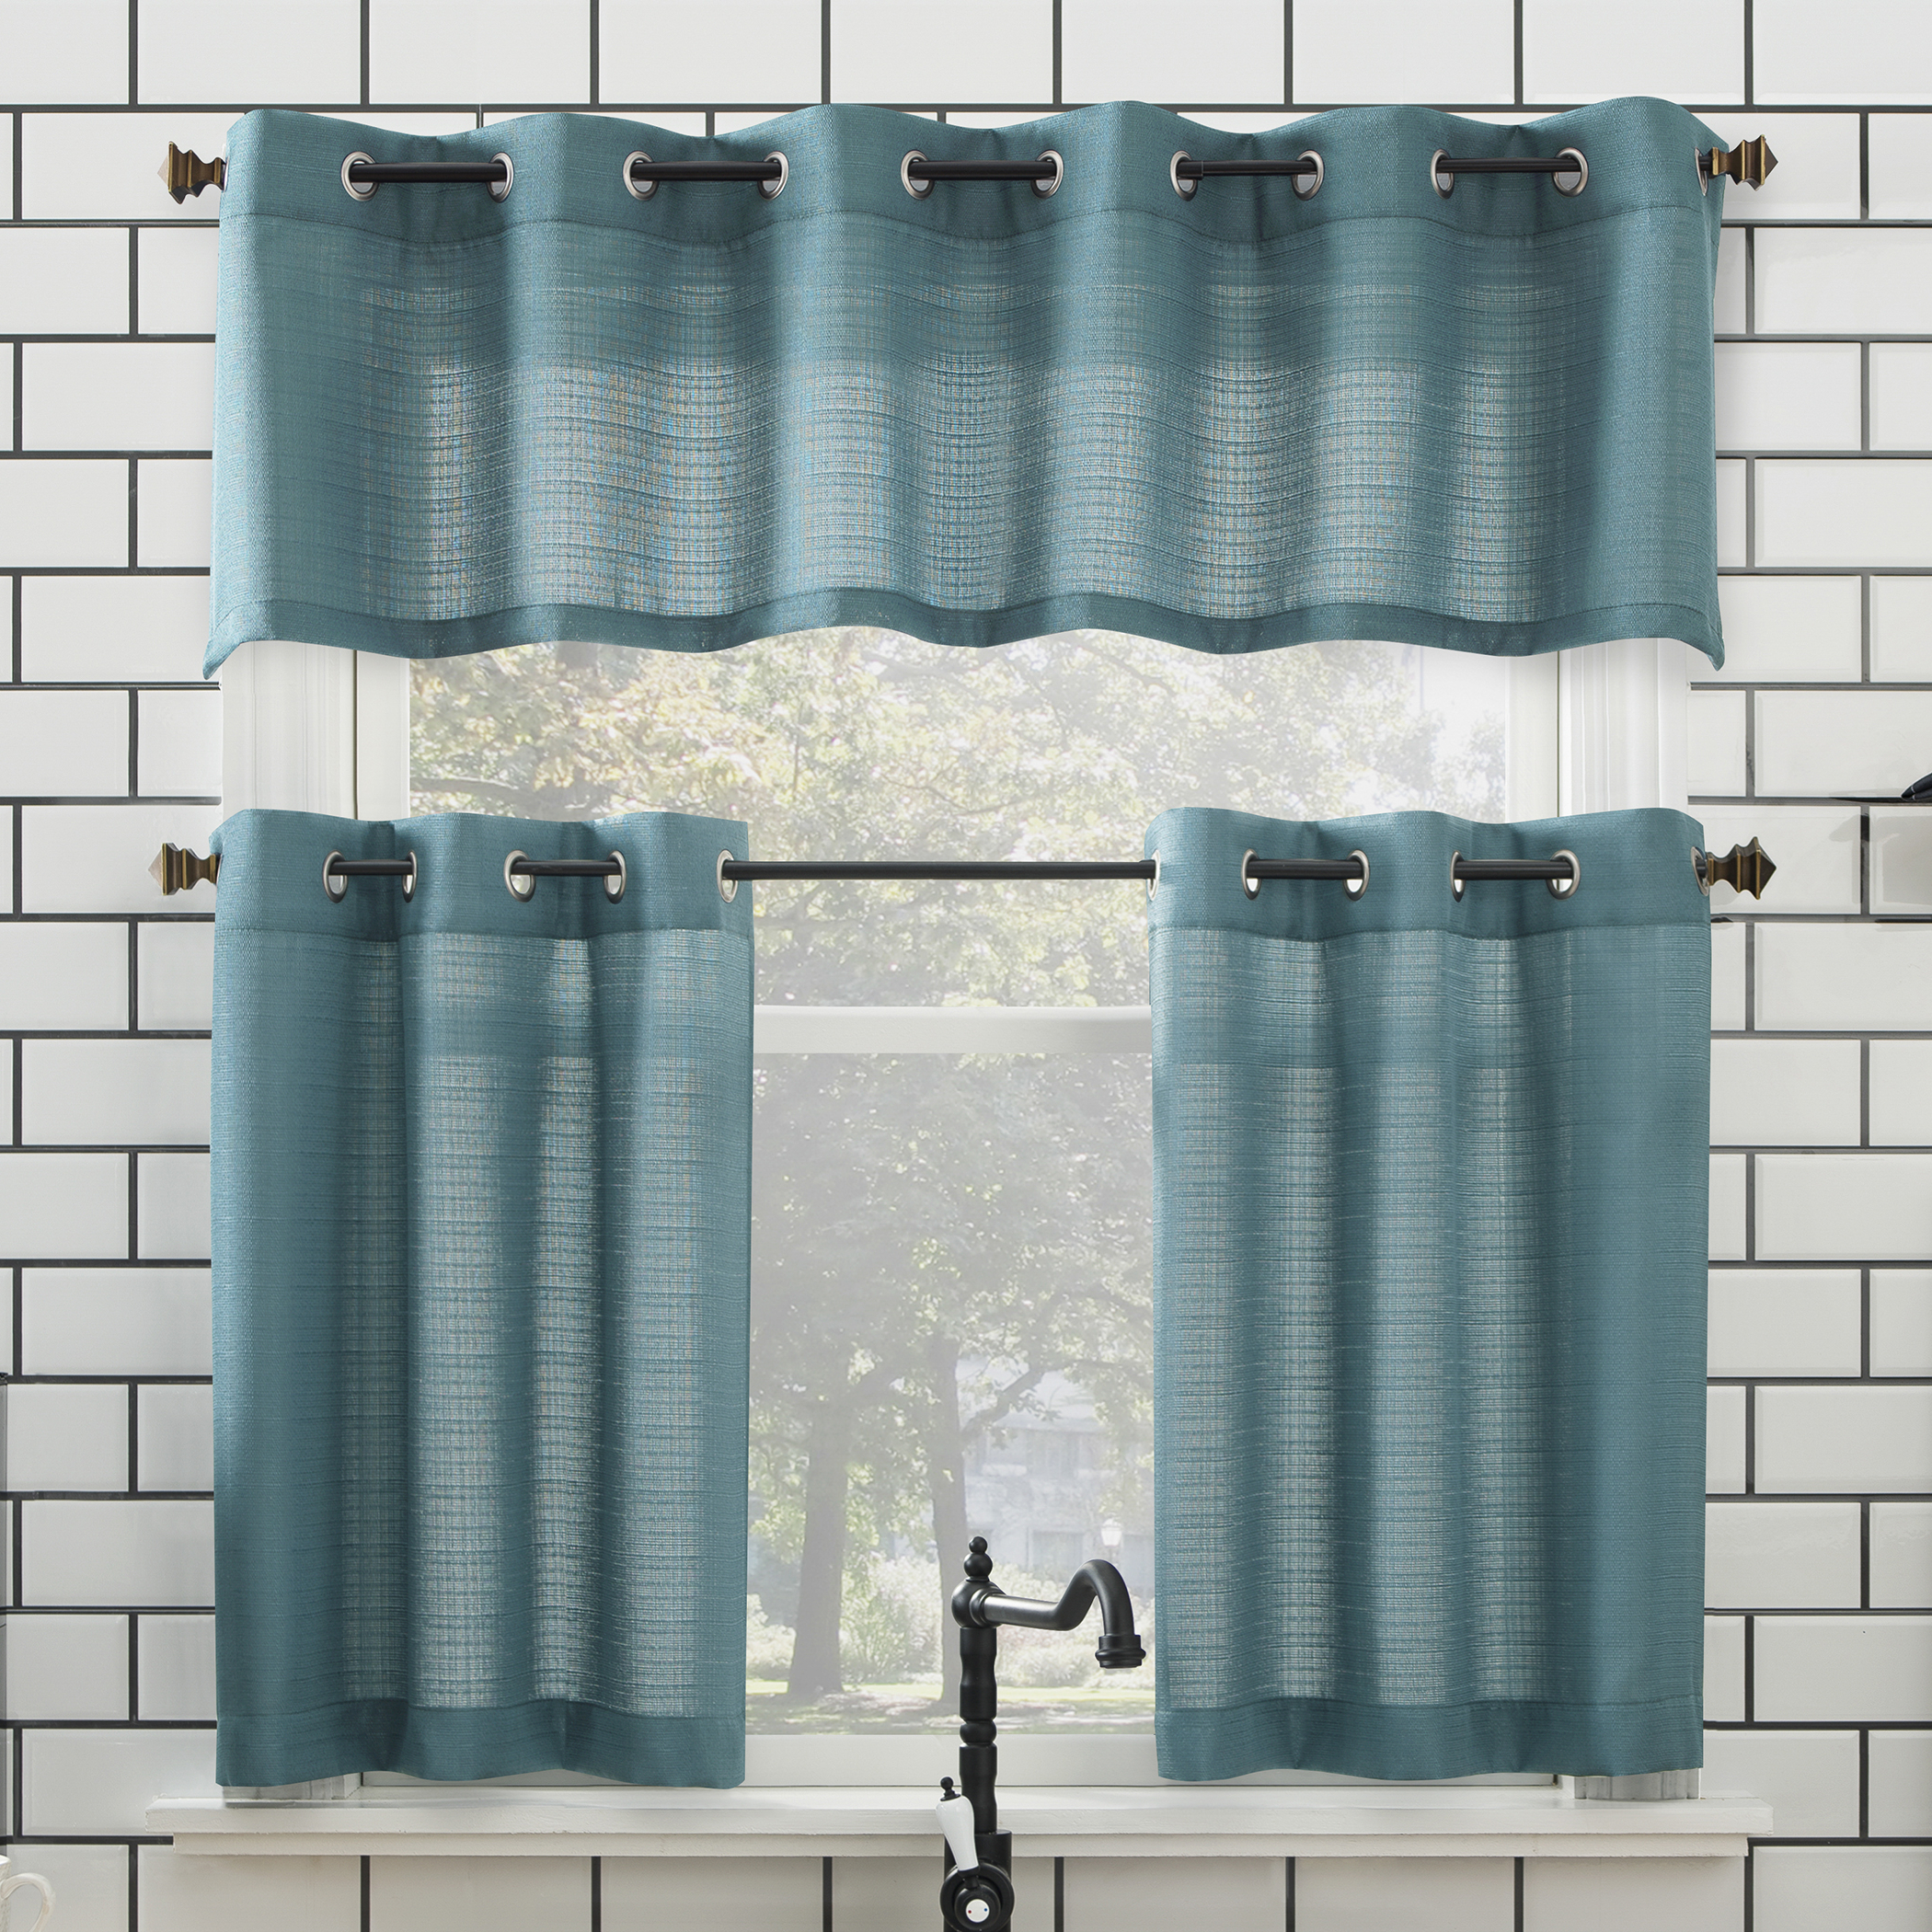 Best And Newest Mainstays Solid Grommet 3 Piece Kitchen Curtain Tier And Valance Set With Microfiber 3 Piece Kitchen Curtain Valance And Tiers Sets (View 16 of 20)